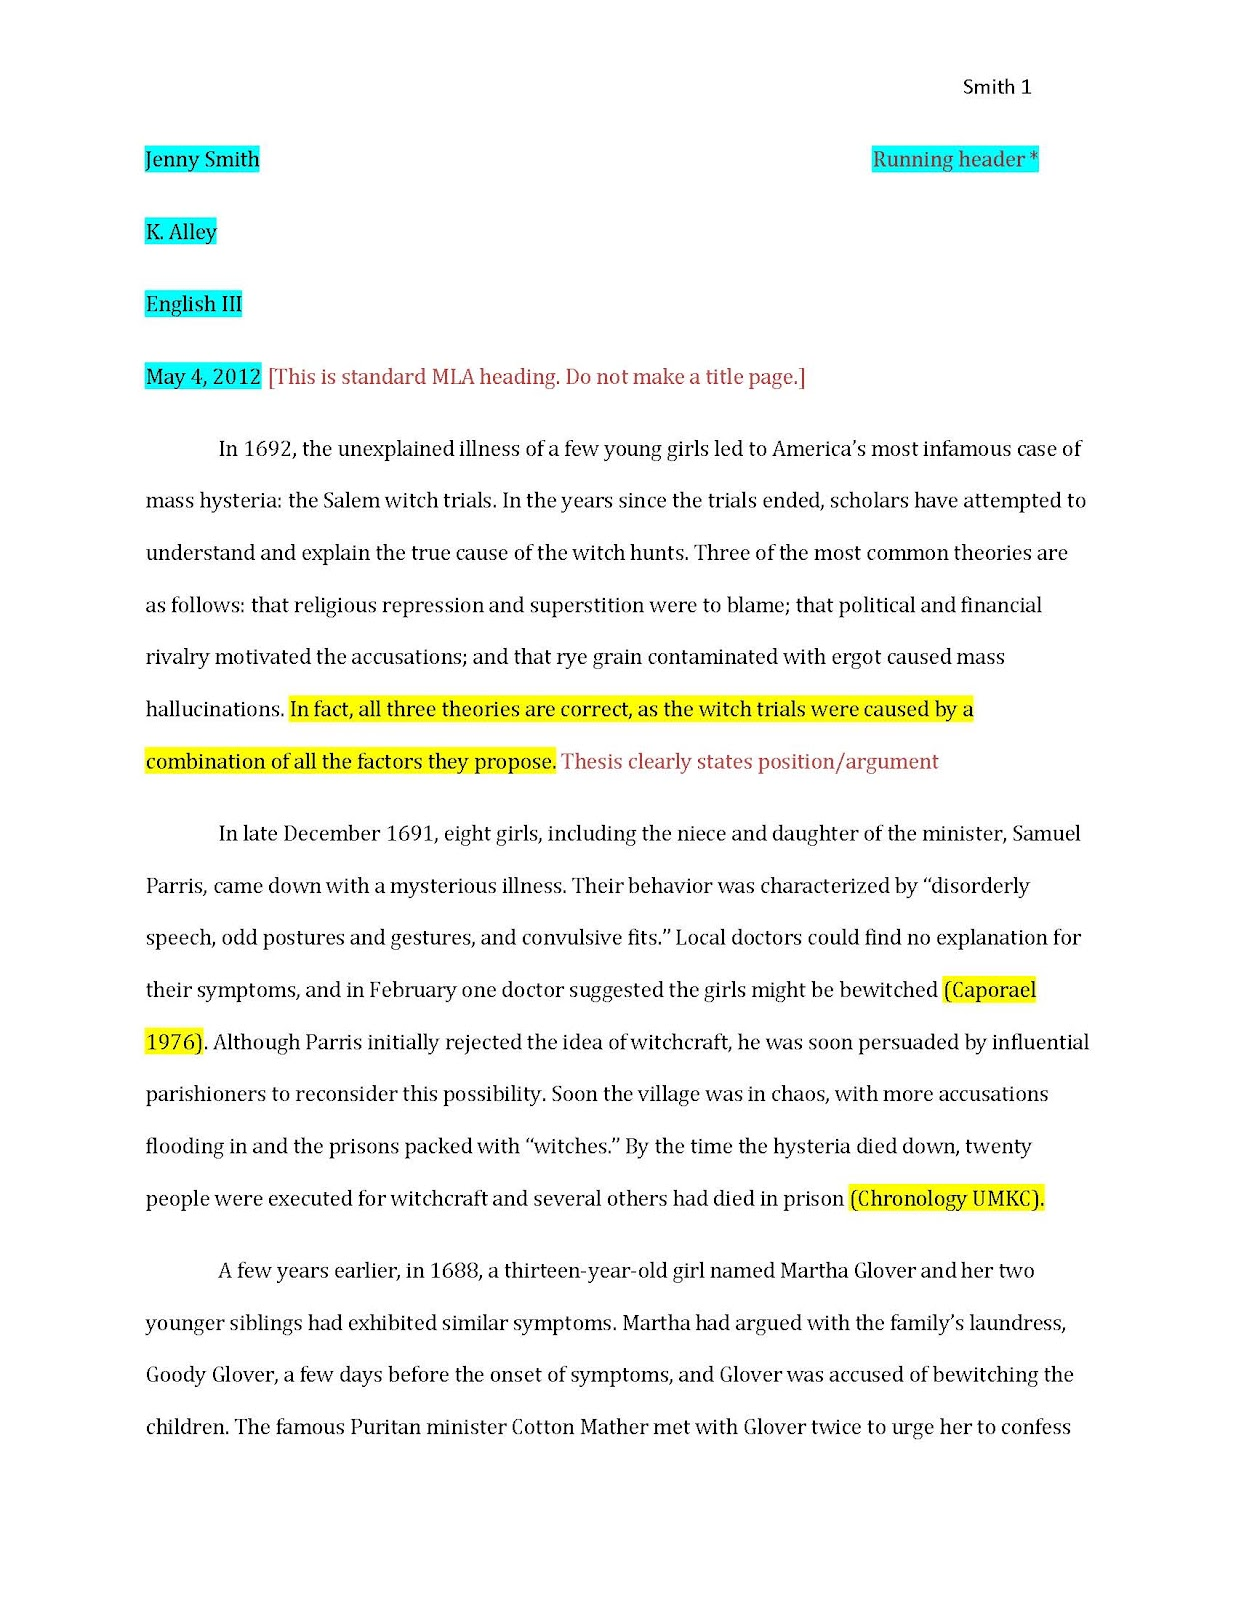 014 Examplepaper Page 1 How To Quote Book In An Essay Formidable A Cite Mla Using Title Full